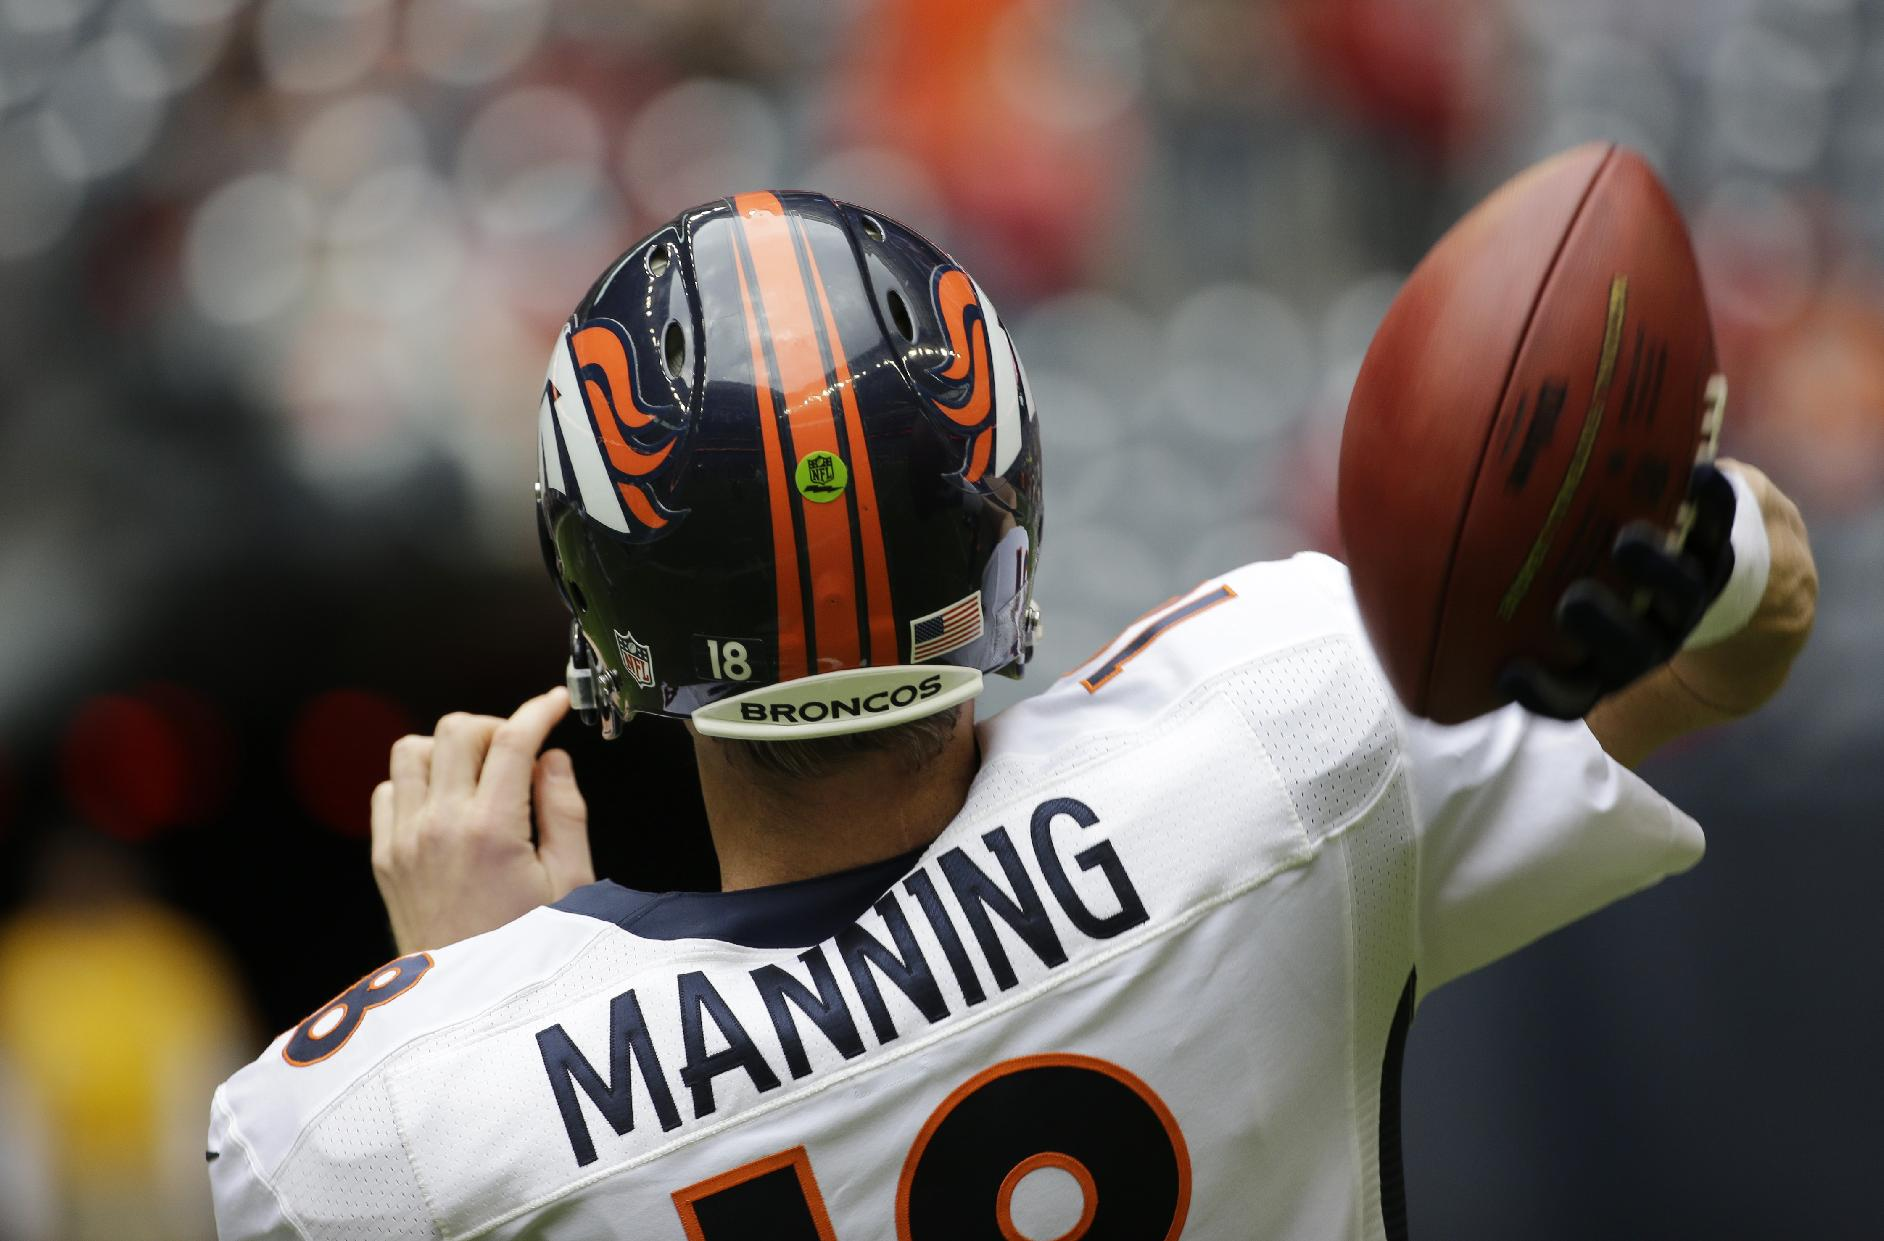 Denver Broncos' Peyton Manning throws as he prepares before an NFL football game against the Houston Texans, Sunday, Dec. 22, 2013, in Houston